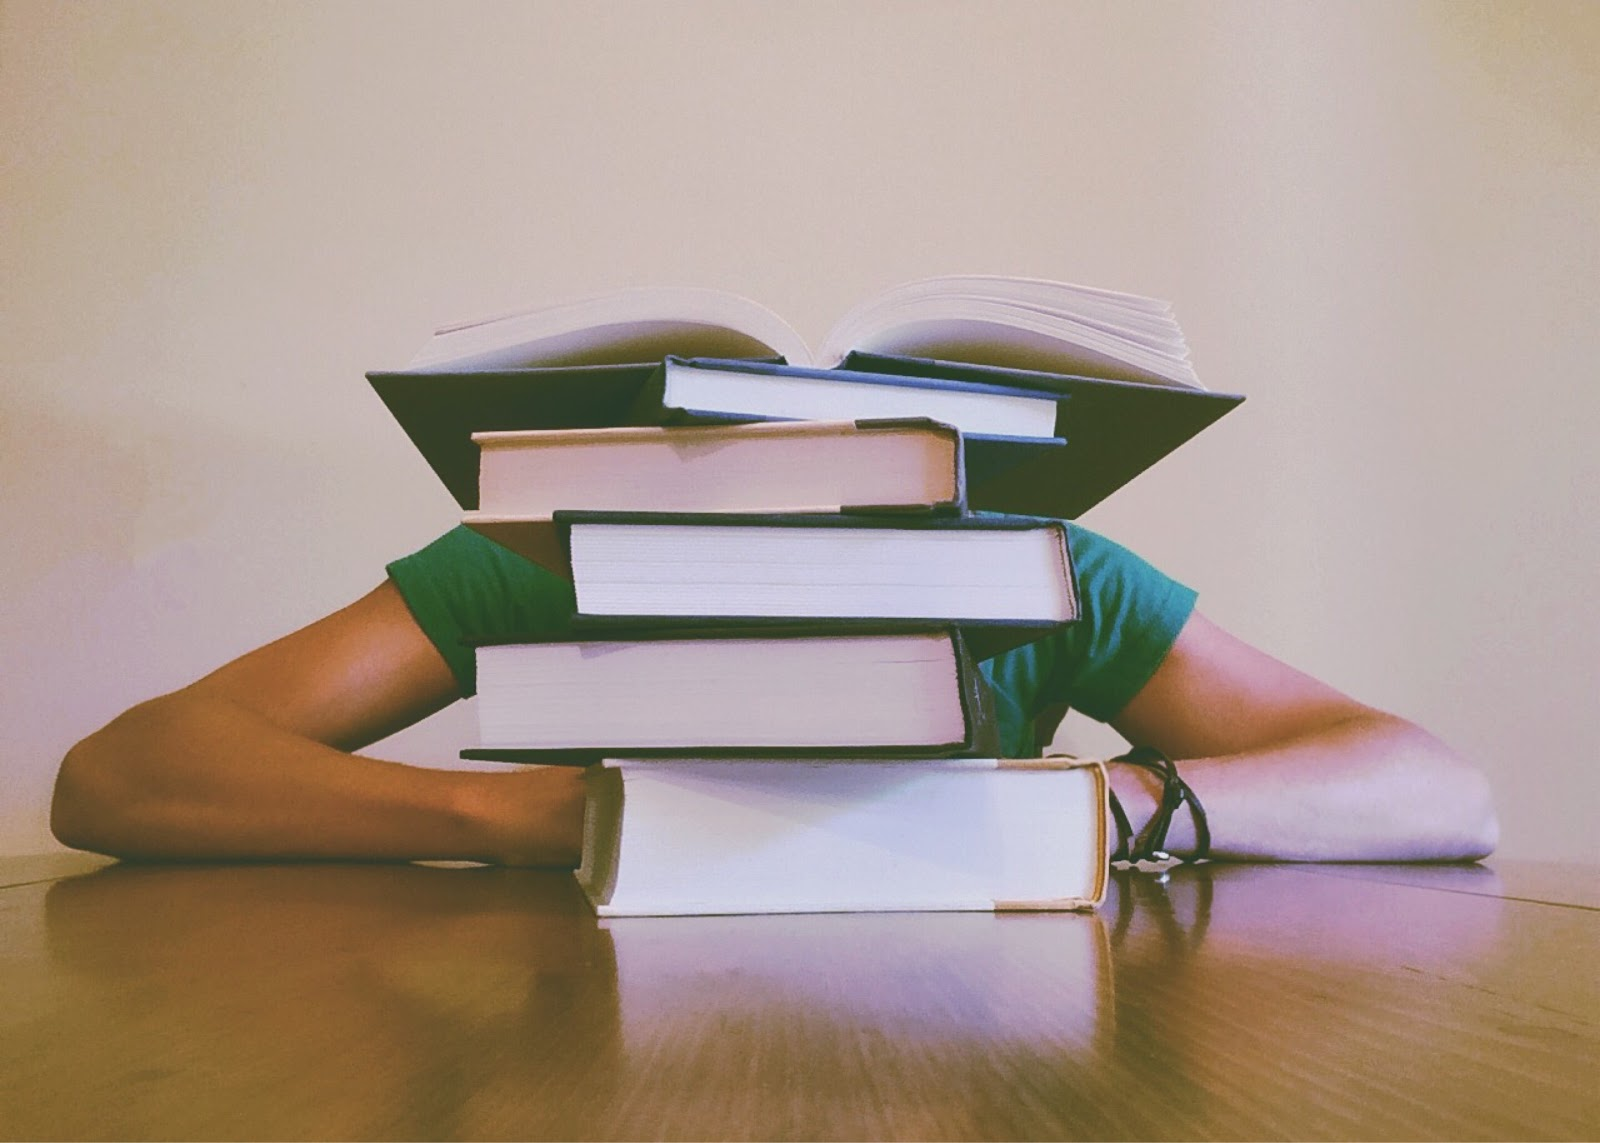 Person behind pile of books